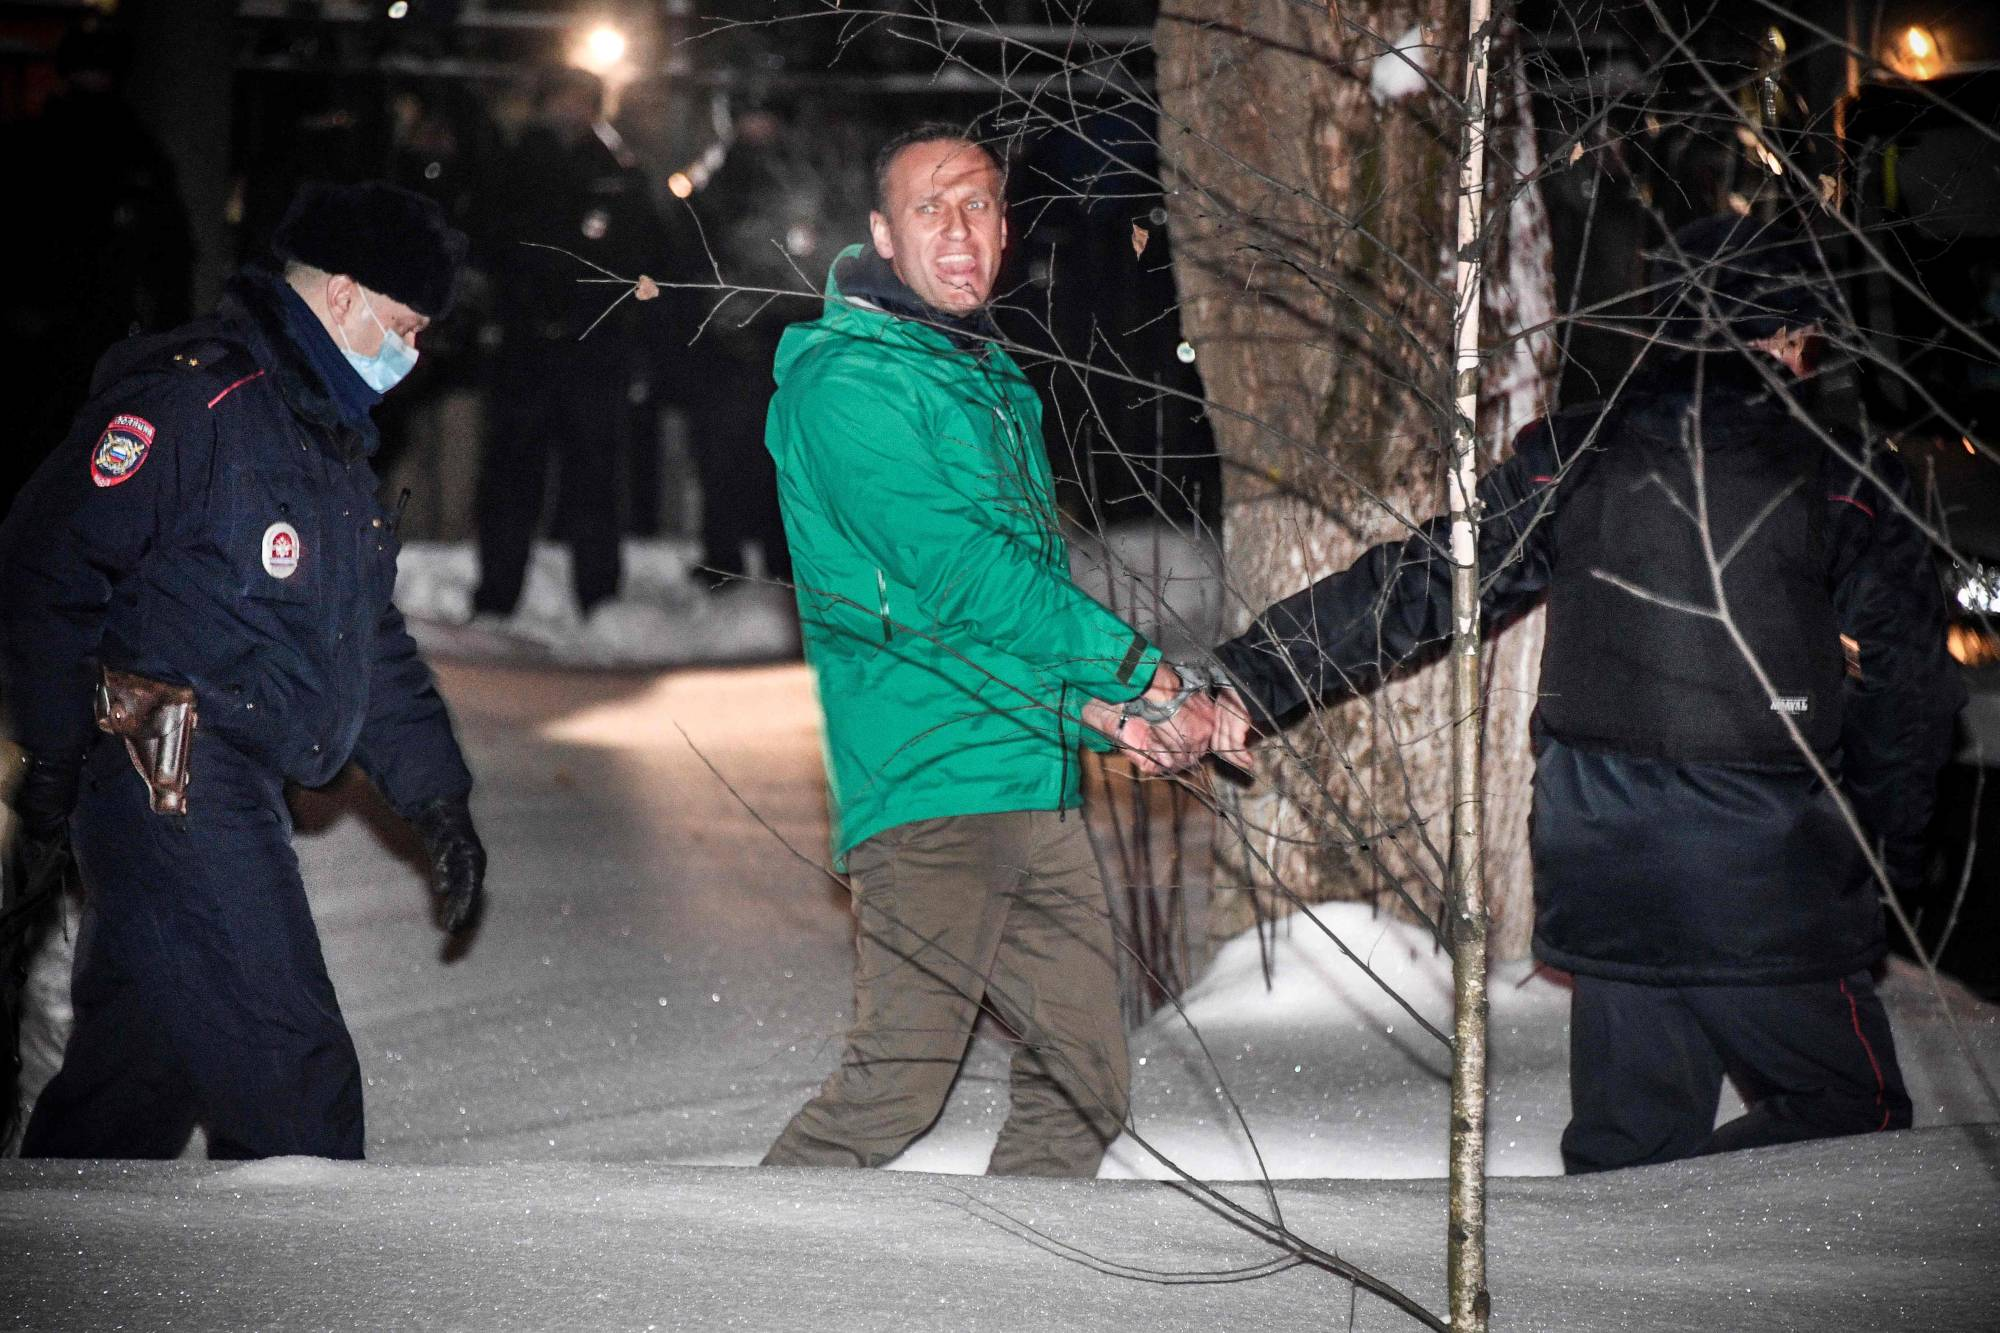 Opposition leader Alexei Navalny is escorted out of a police station in Khimki, outside Moscow, on Monday following a court ruling that ordered him jailed for 30 days.  | AFP-JIJI